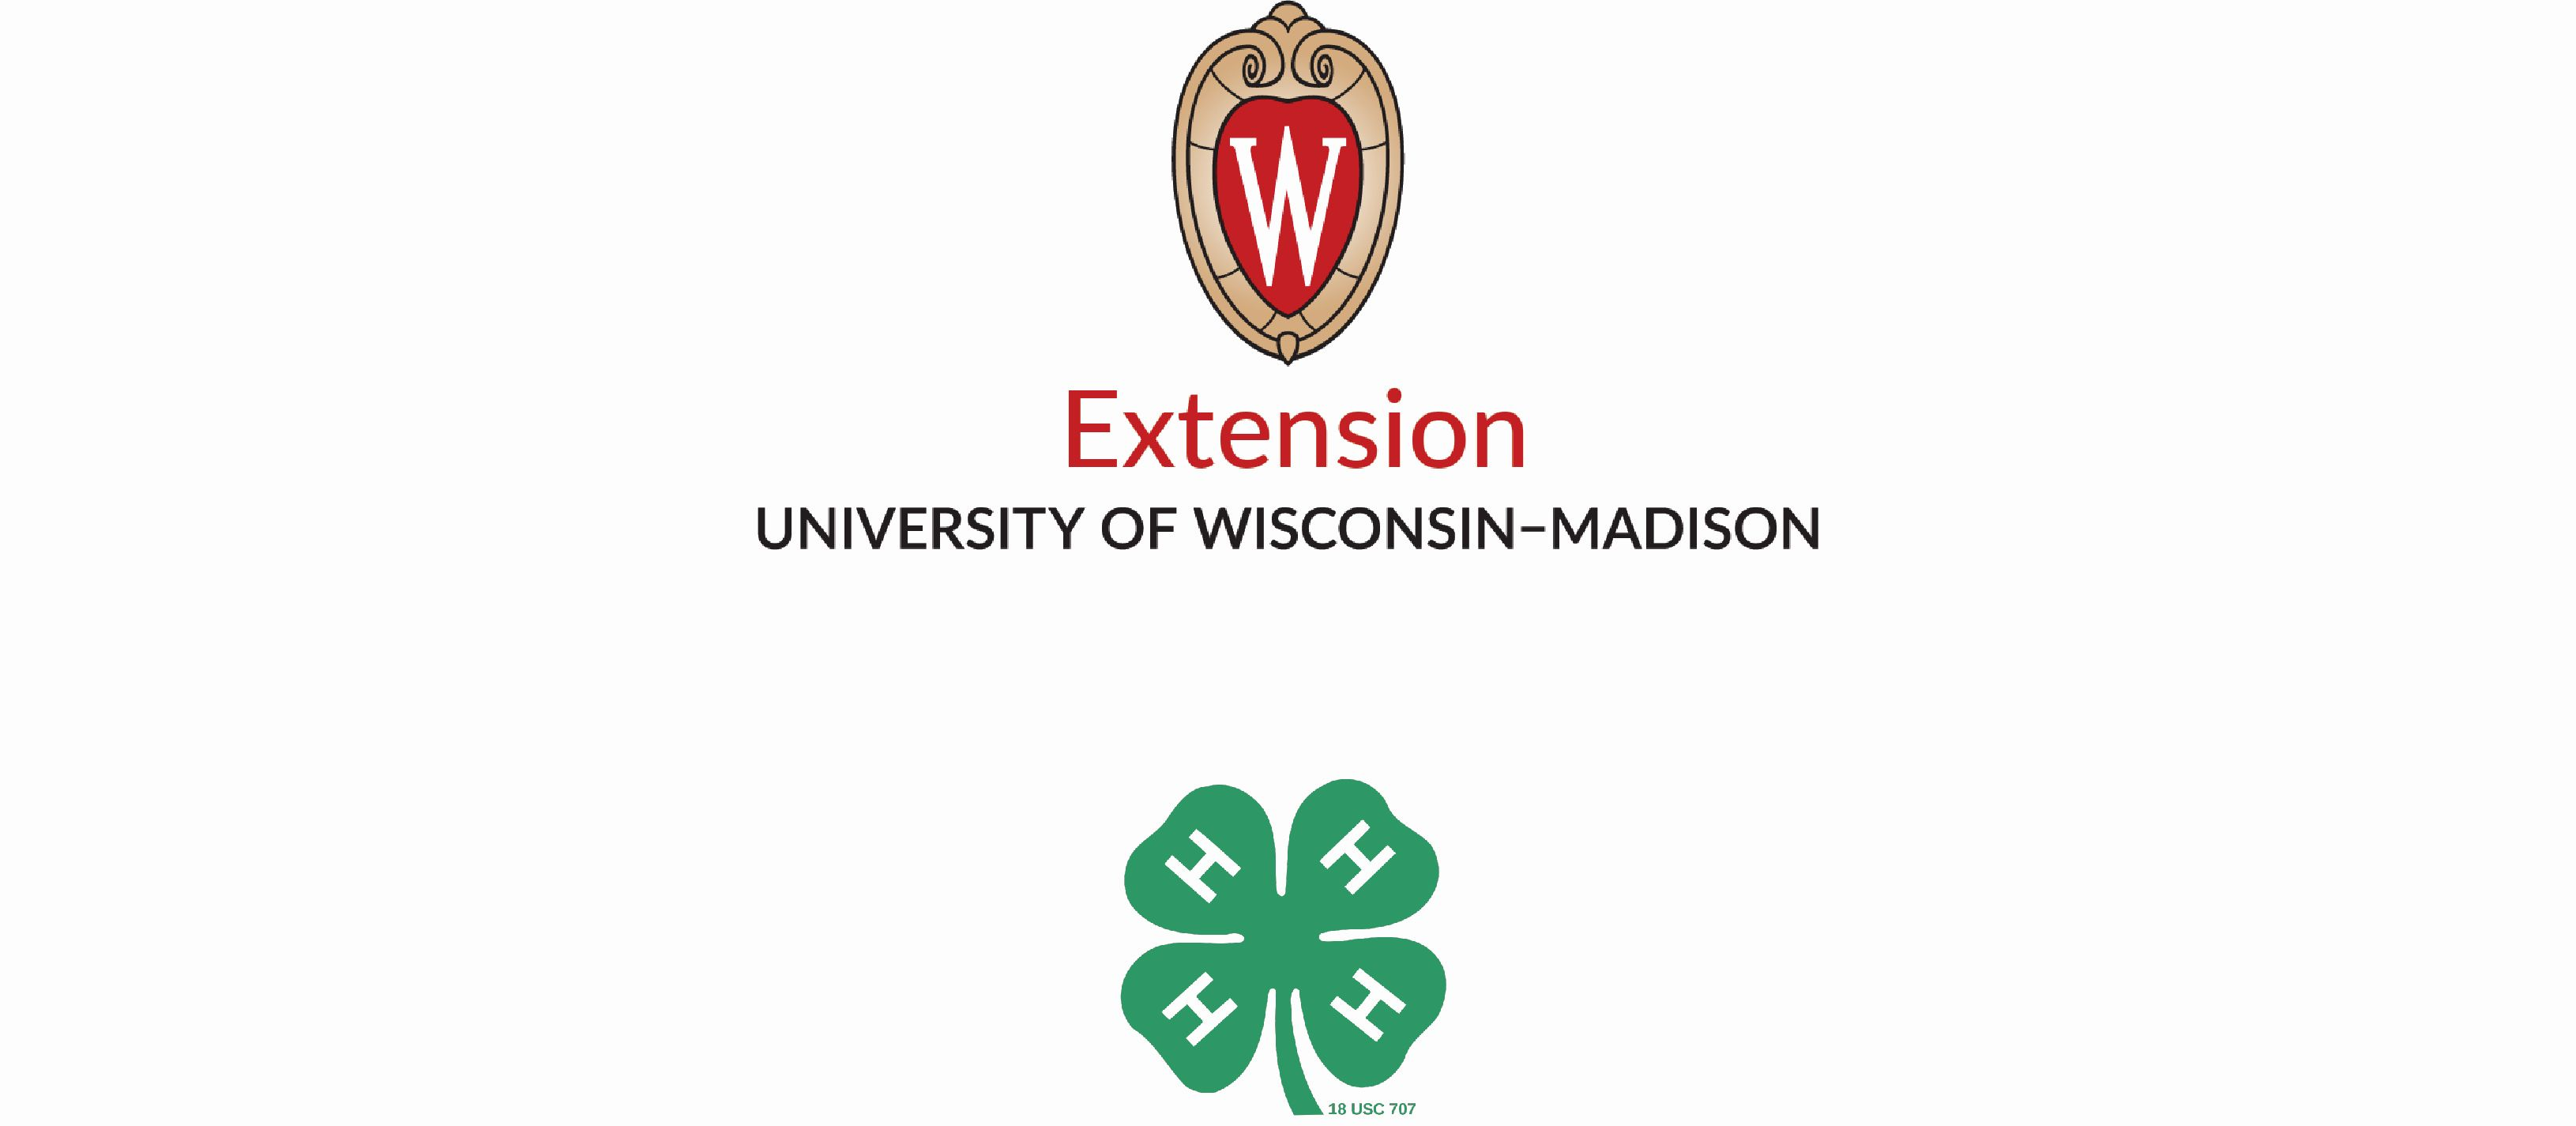 4-H and UW-Extension Co Branding logo vertical